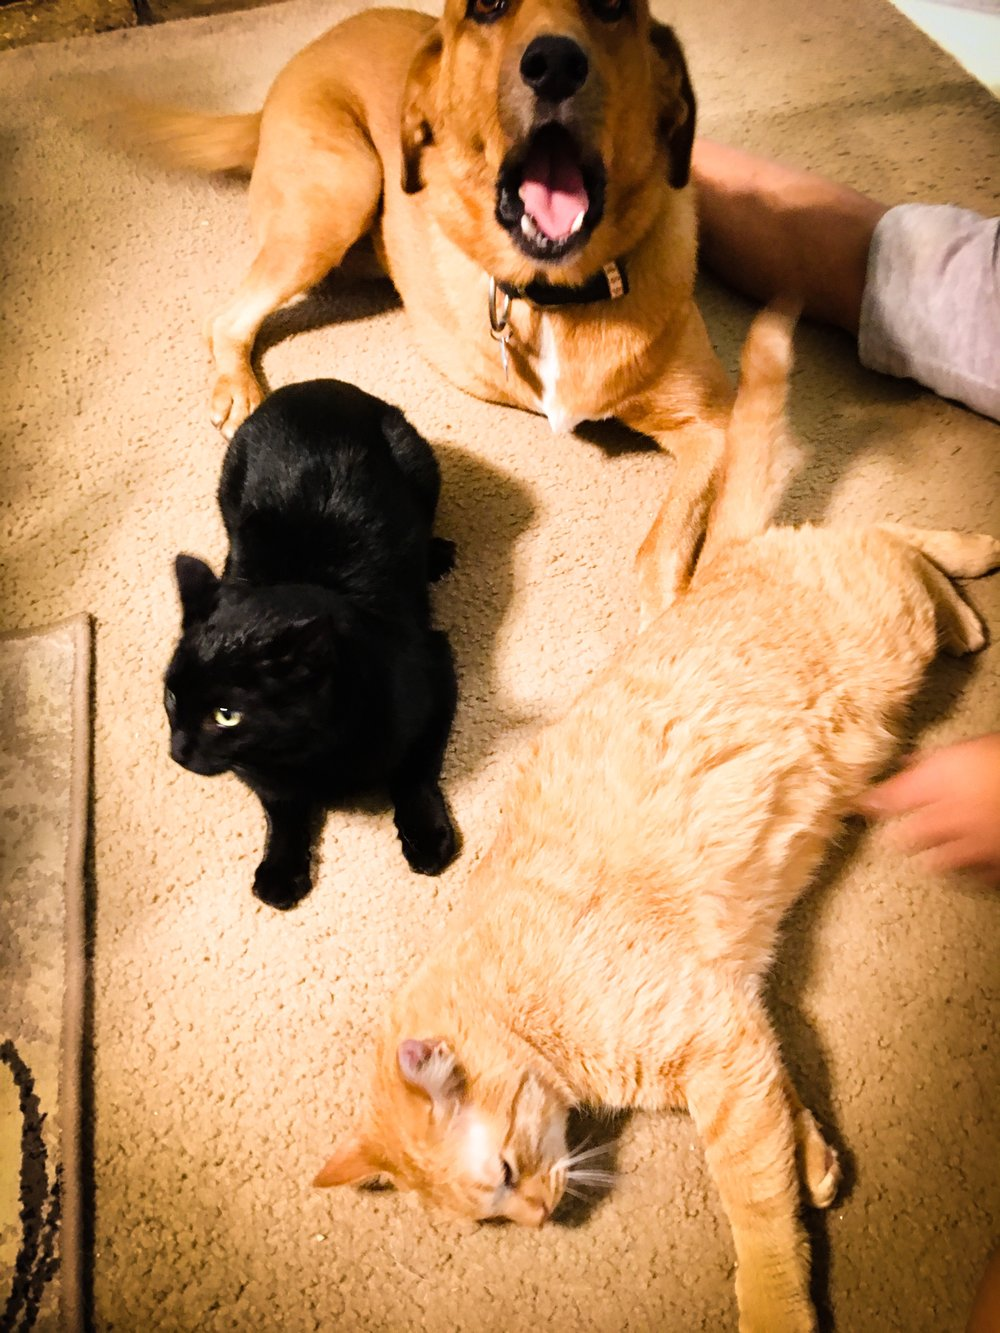 Leia, Romeow and Meowxwell - tHEY KEEP US SANE.LeiA IS A THREE LEGGED RESCUE DOG.rOMEOW IS A SKIDDISH RESCUE CAT.mEOWXWELL IS A FAT BASTARD.